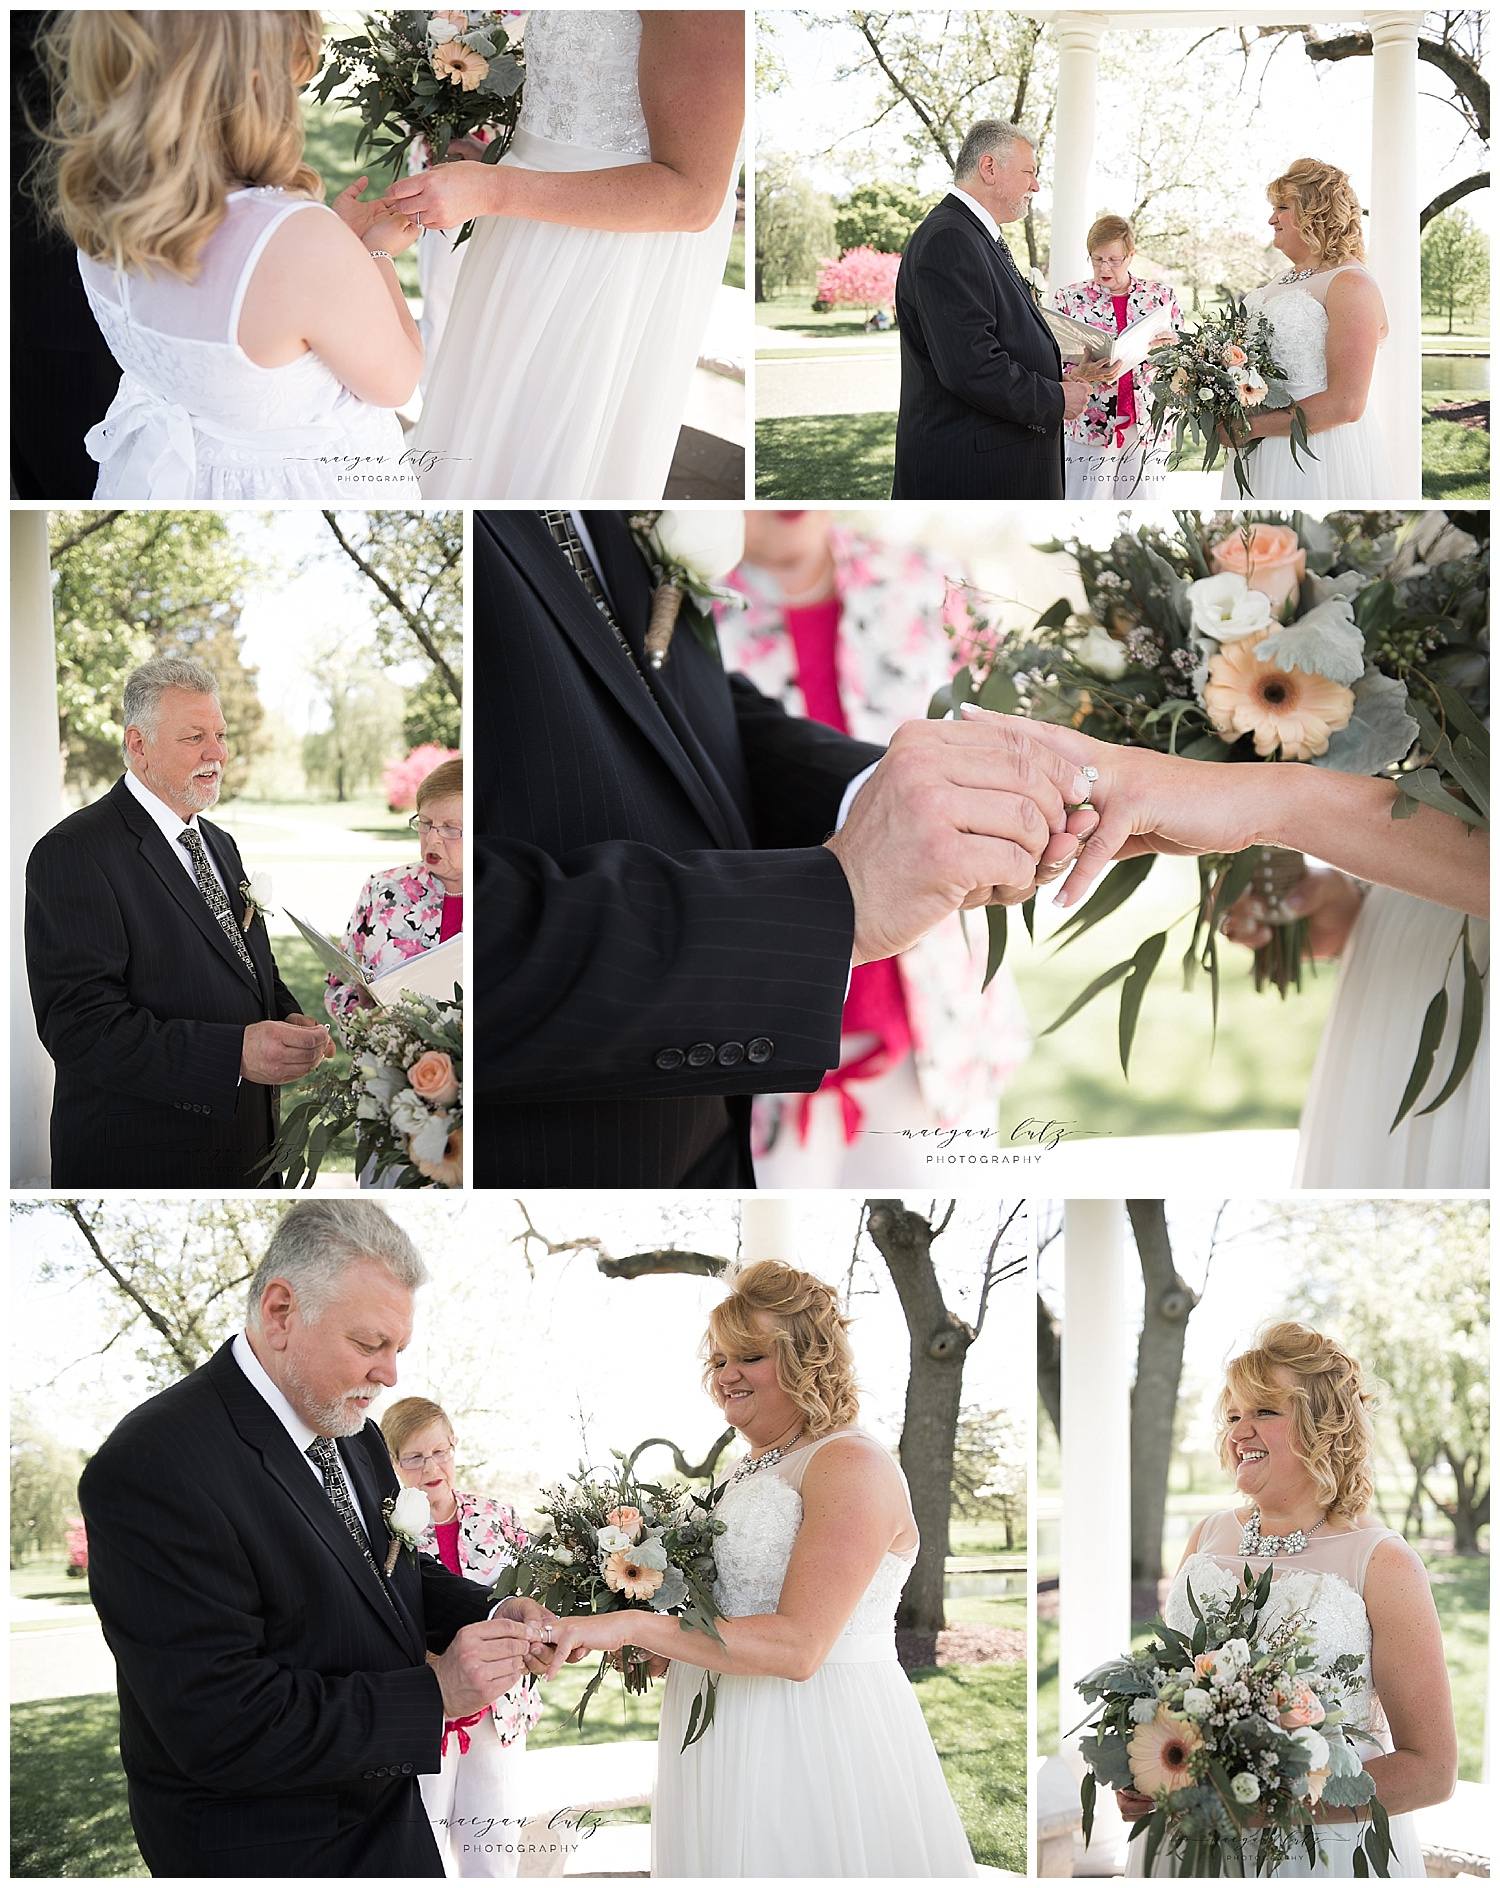 NEPA Wedding Photographer in Allentown PA with Ceremony at the Rose Garden